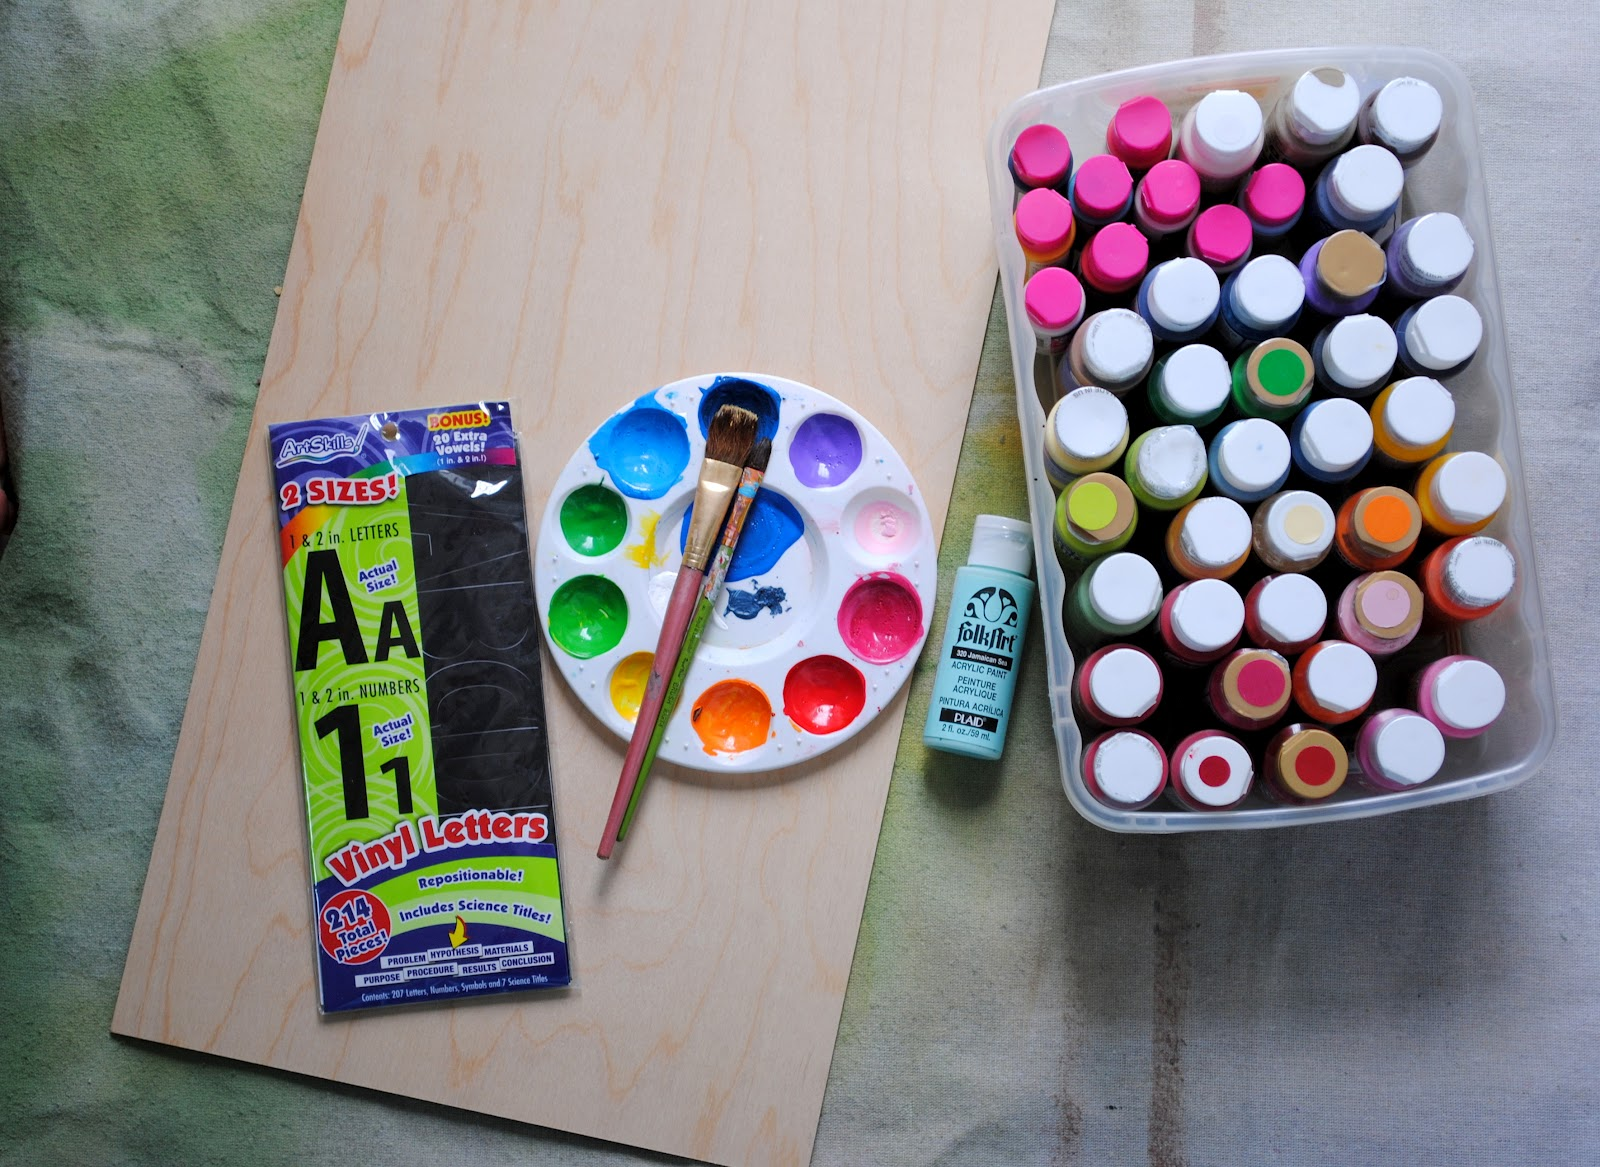 Cool diy projects for your room viewing gallery - Art projects for your room ...